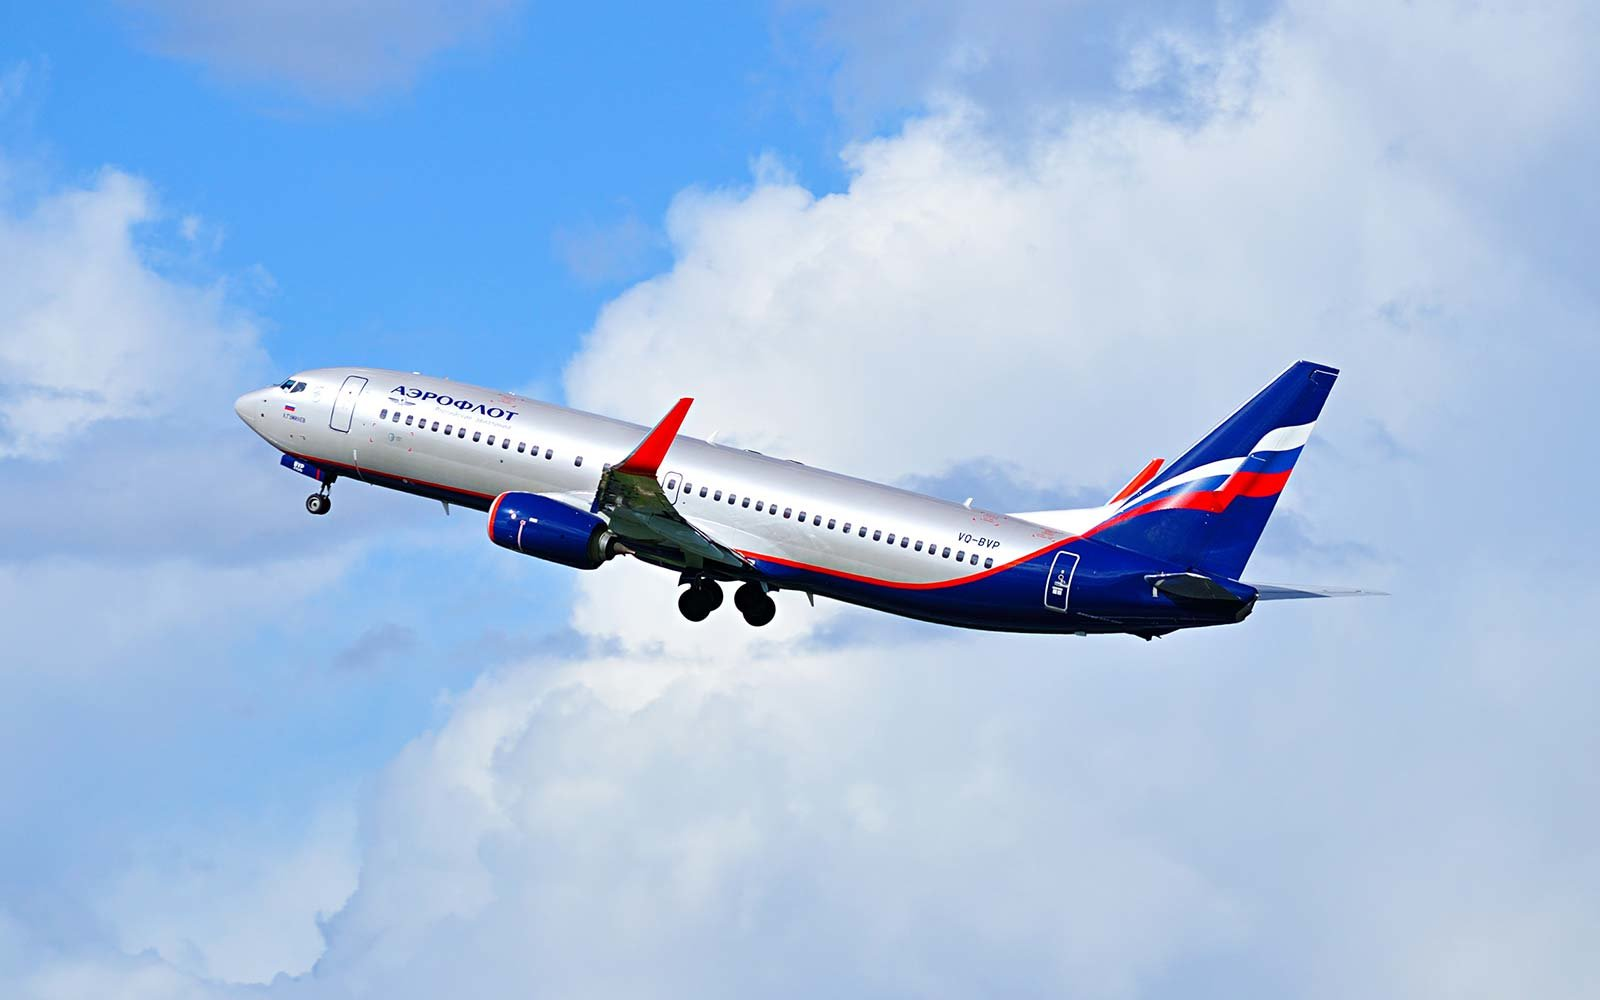 Aeroflot Airlines airplane turbulence injurty